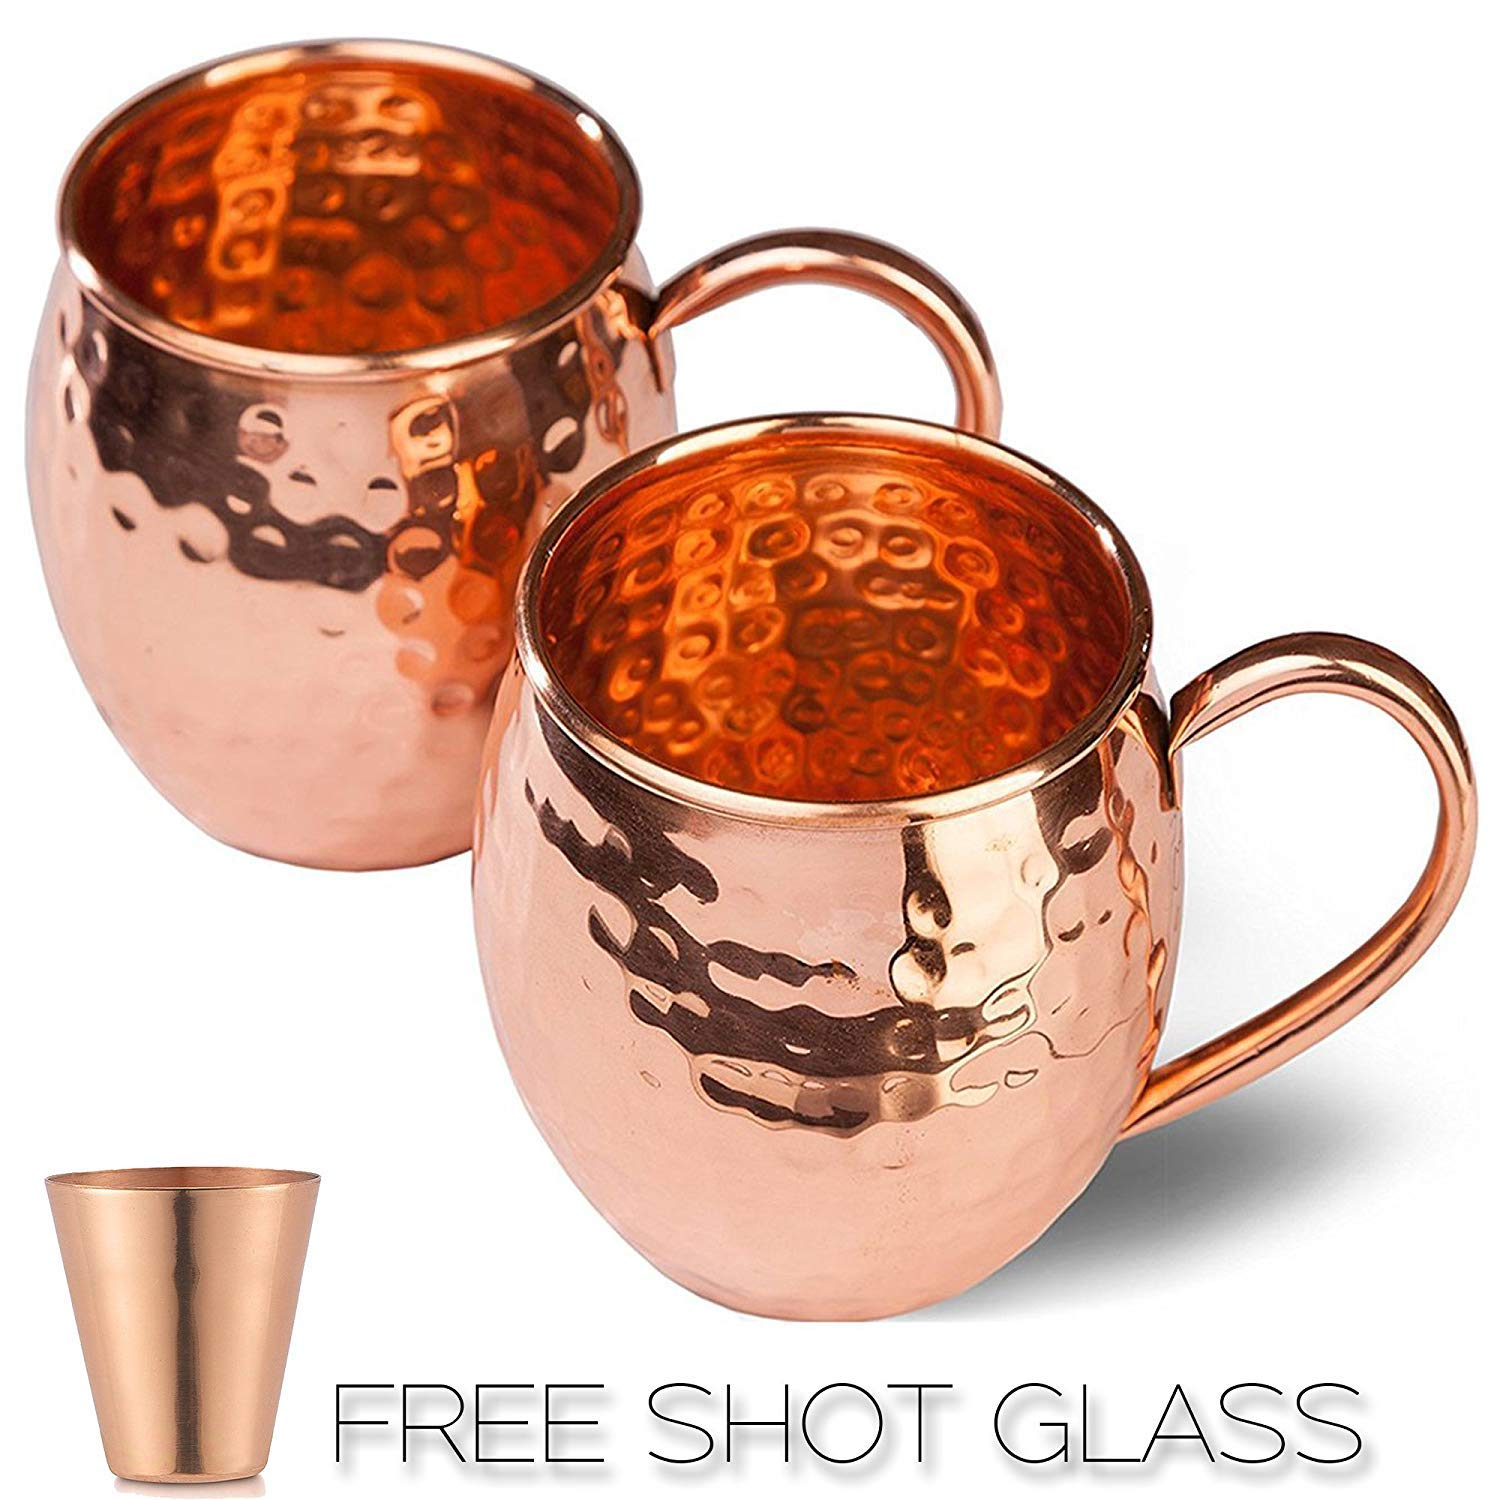 Moscow Mule Copper Mugs GiftBox - 100% Pure Copper Hand Crafted Hand Hammered Copper Mugs Cups for Moscow Mule Cocktail Drink - Set of 2 Copper Mugs with SHOT GLASS by Moscow-Mix